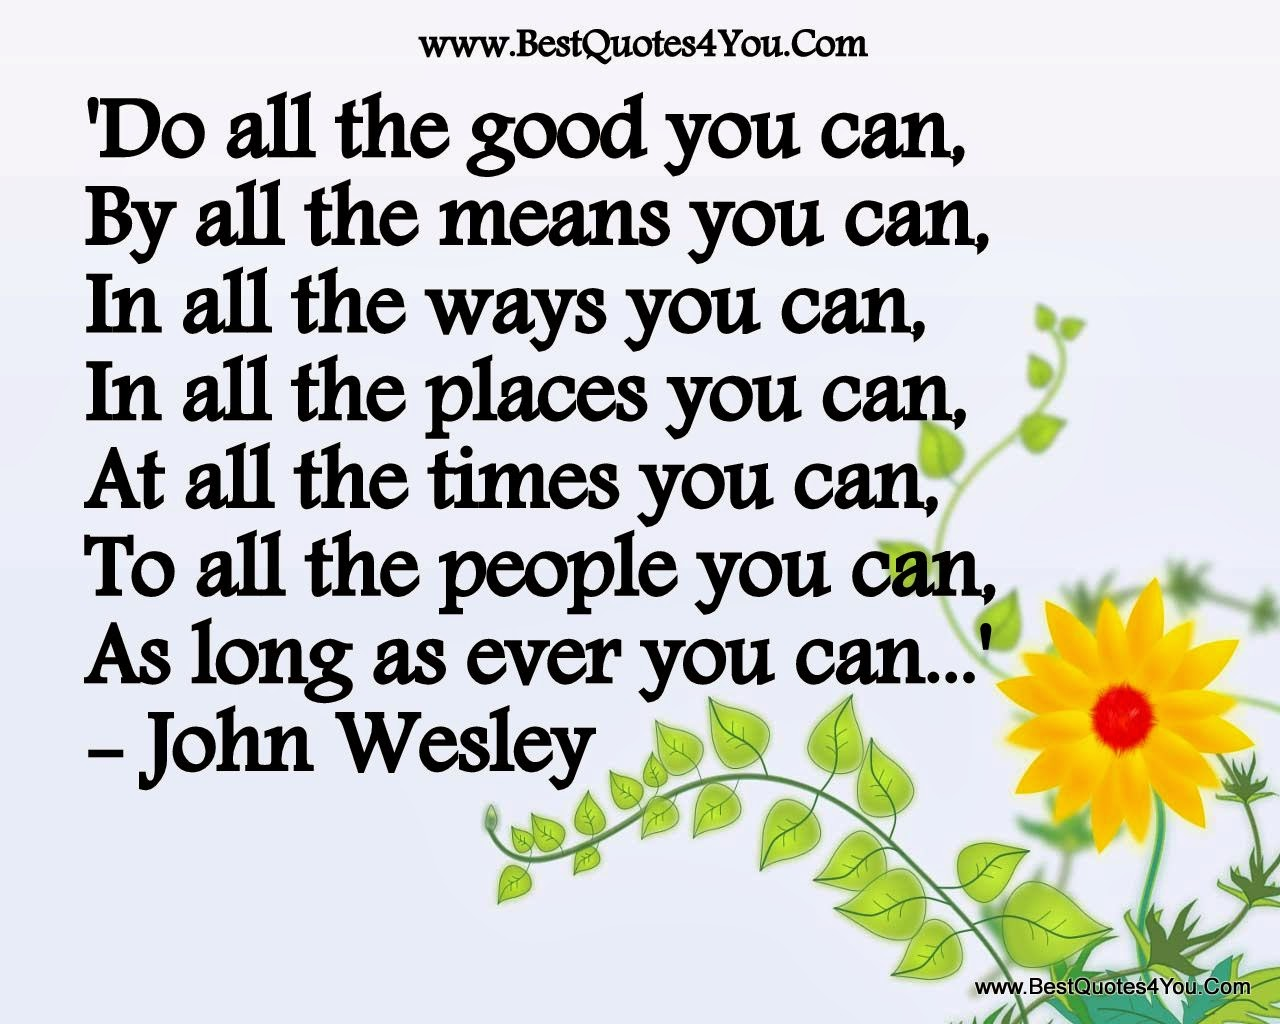 """Do all the good you can, by all the means you can, in all the ways you can, in all the places you can, at all the times you can, to all the people you can, as  long as ever you can!"" ~ John Wesley Art of a yellow flower. www.bestquotes4you.com"